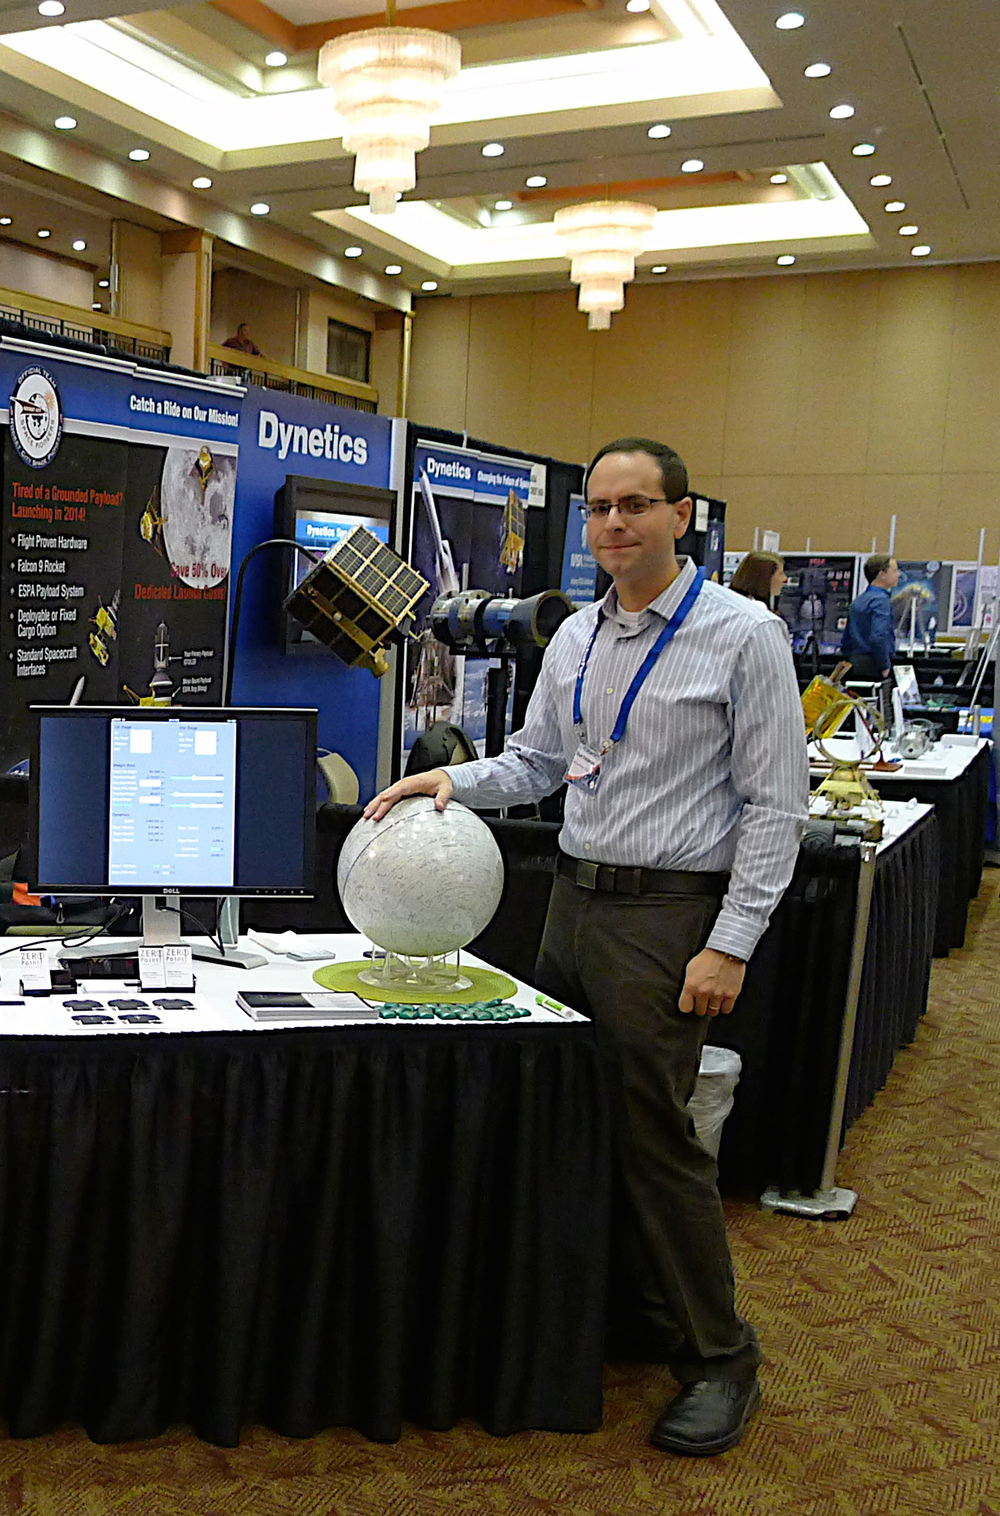 At ISDC 2011 in Huntsville, AL. Note the Bigelow Thruster on the Dynetics table in the background.